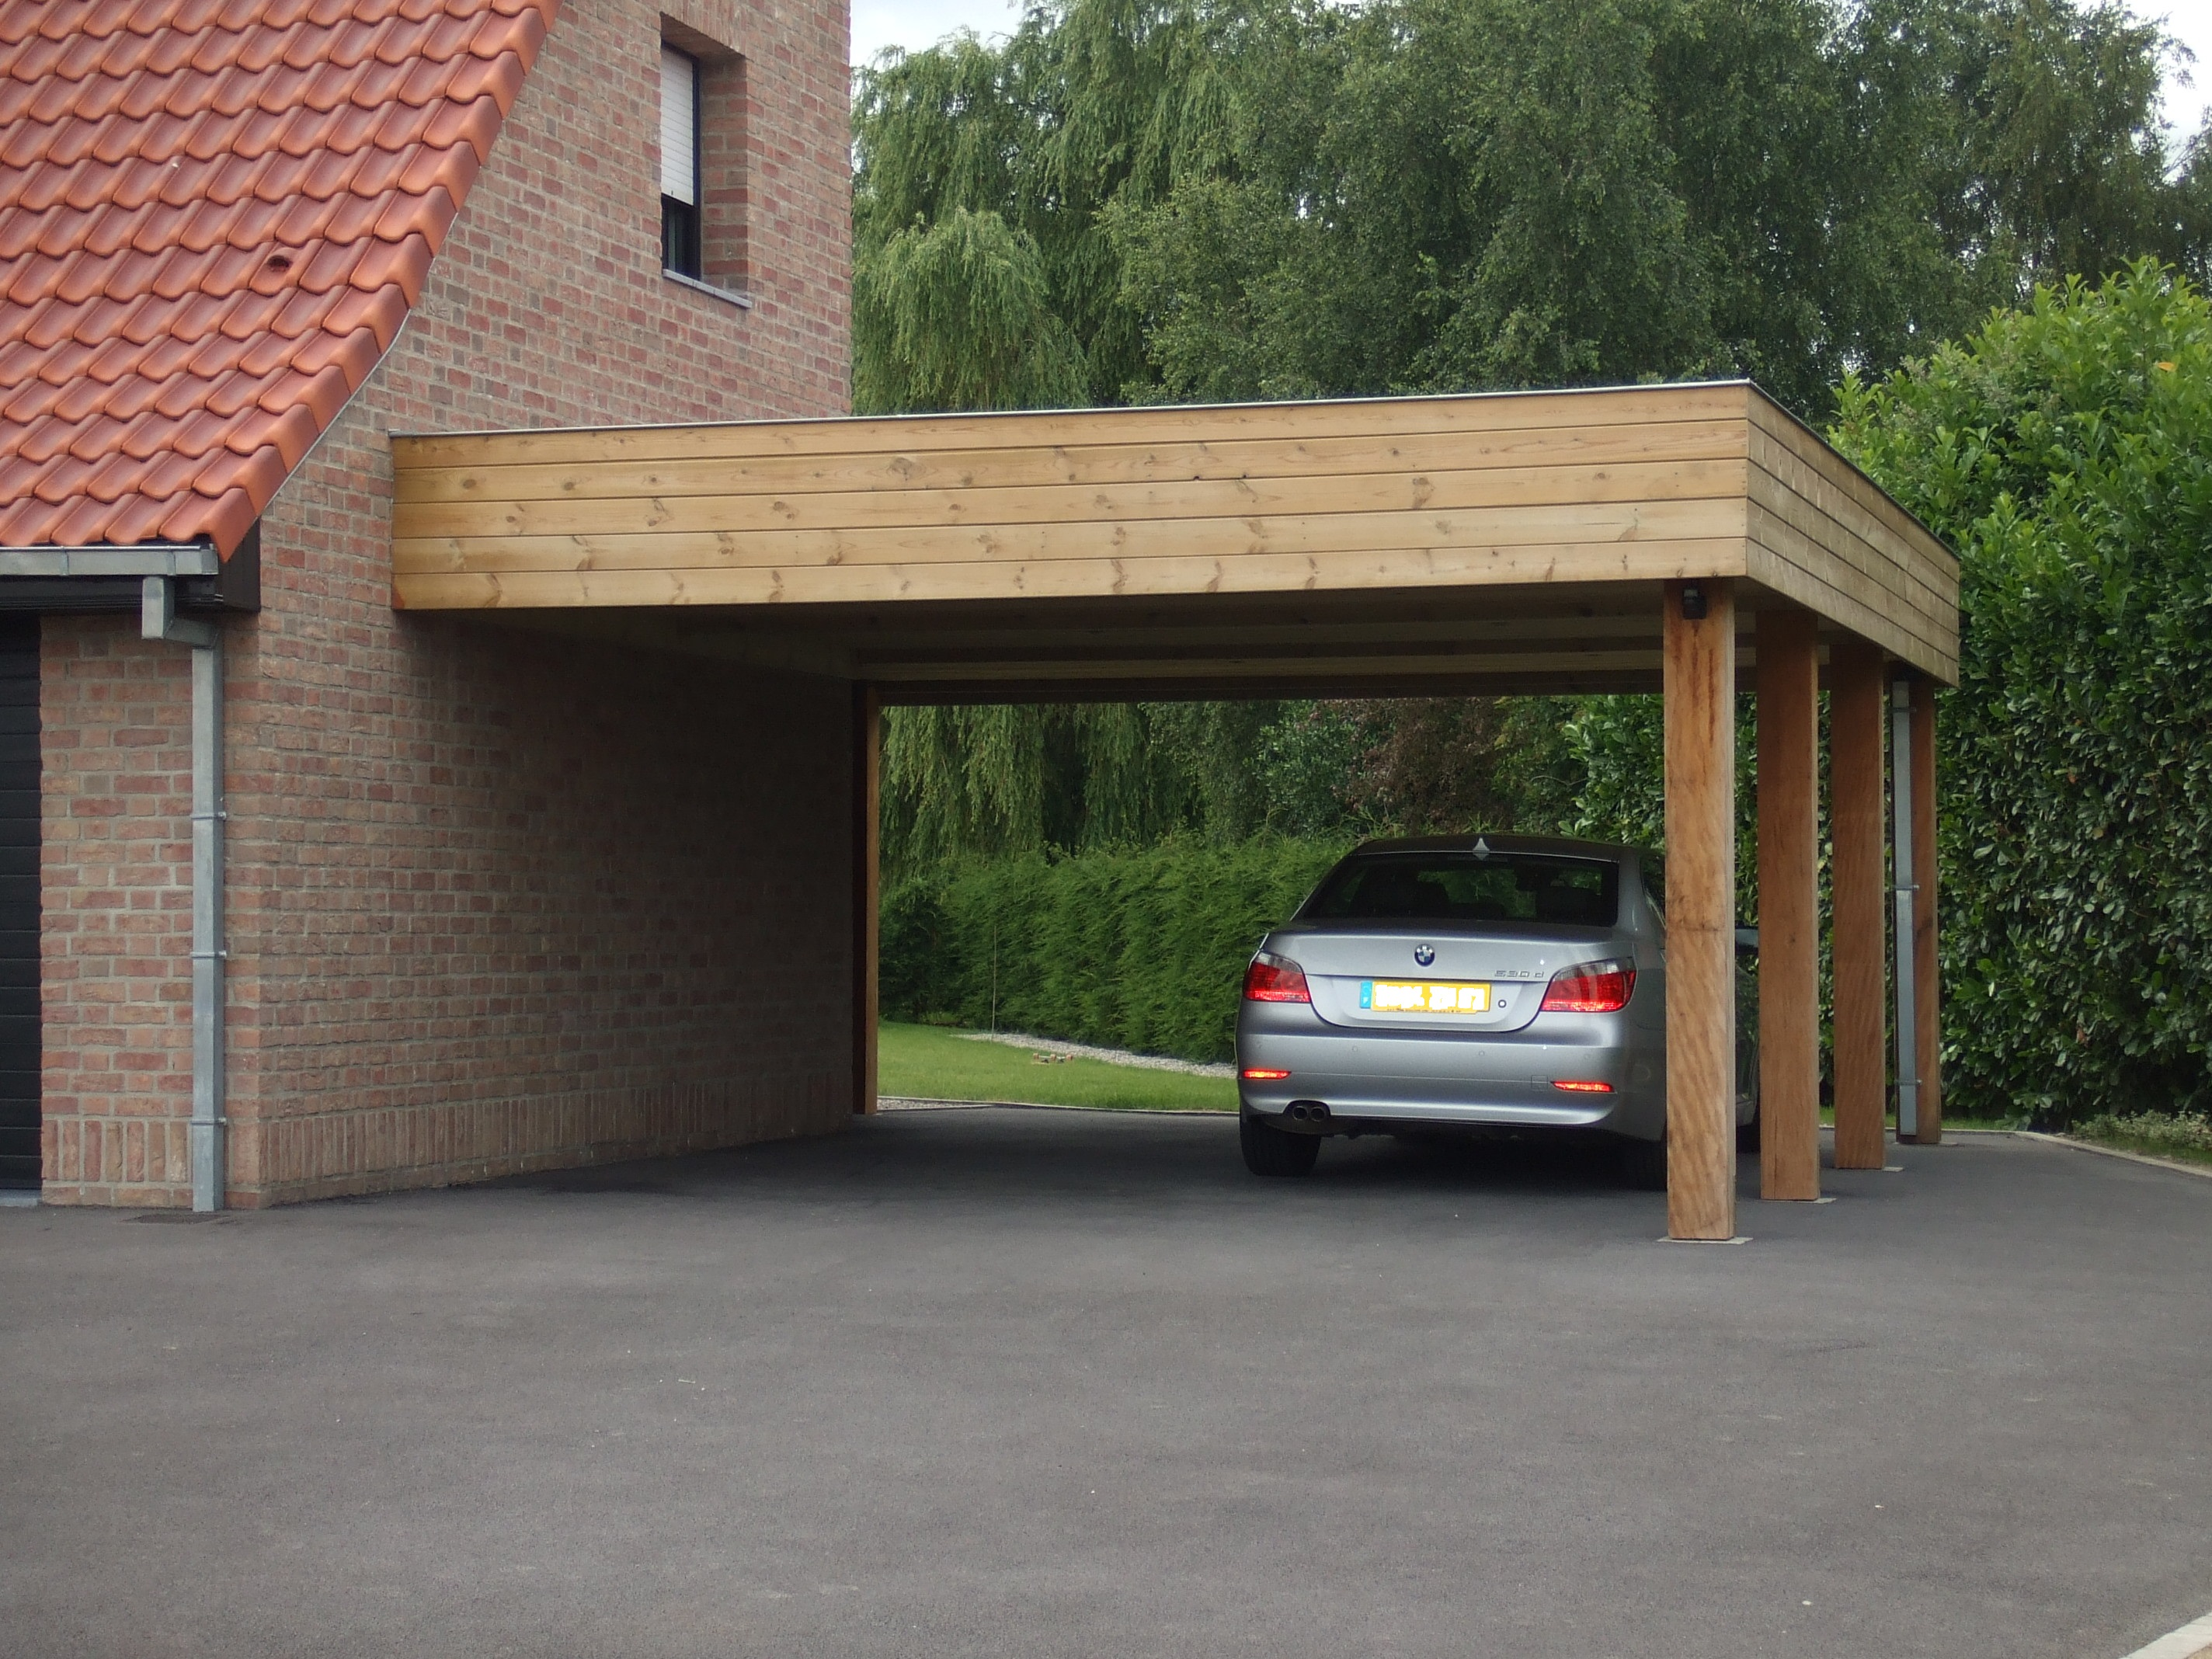 accueil carport abri voiture sur mesure carport abri. Black Bedroom Furniture Sets. Home Design Ideas